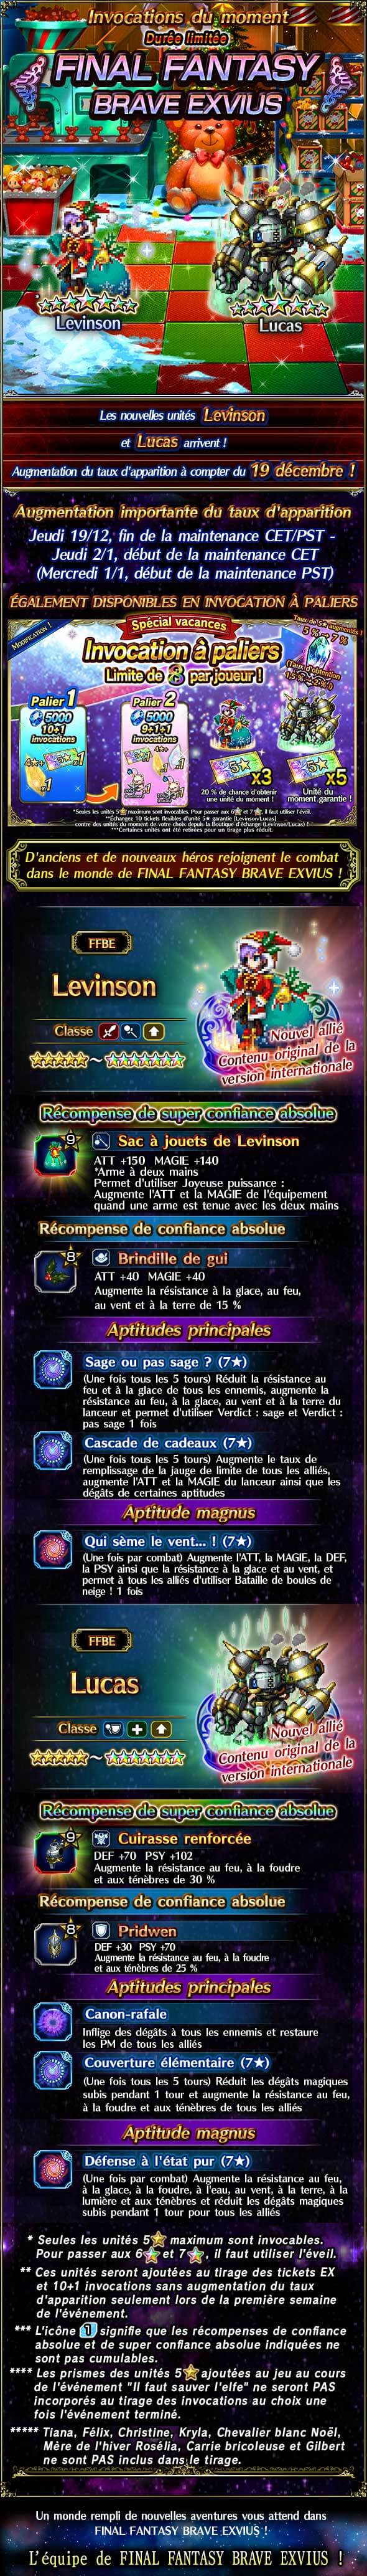 Invocations du moment, boutique d'échange et ticket flexible d'unité 5★ garantie - FFBE Noël 2019 (Levinson/Lucas) - du 19/12 au 02/01/20 NewXmasUnitsFeaturedSummon